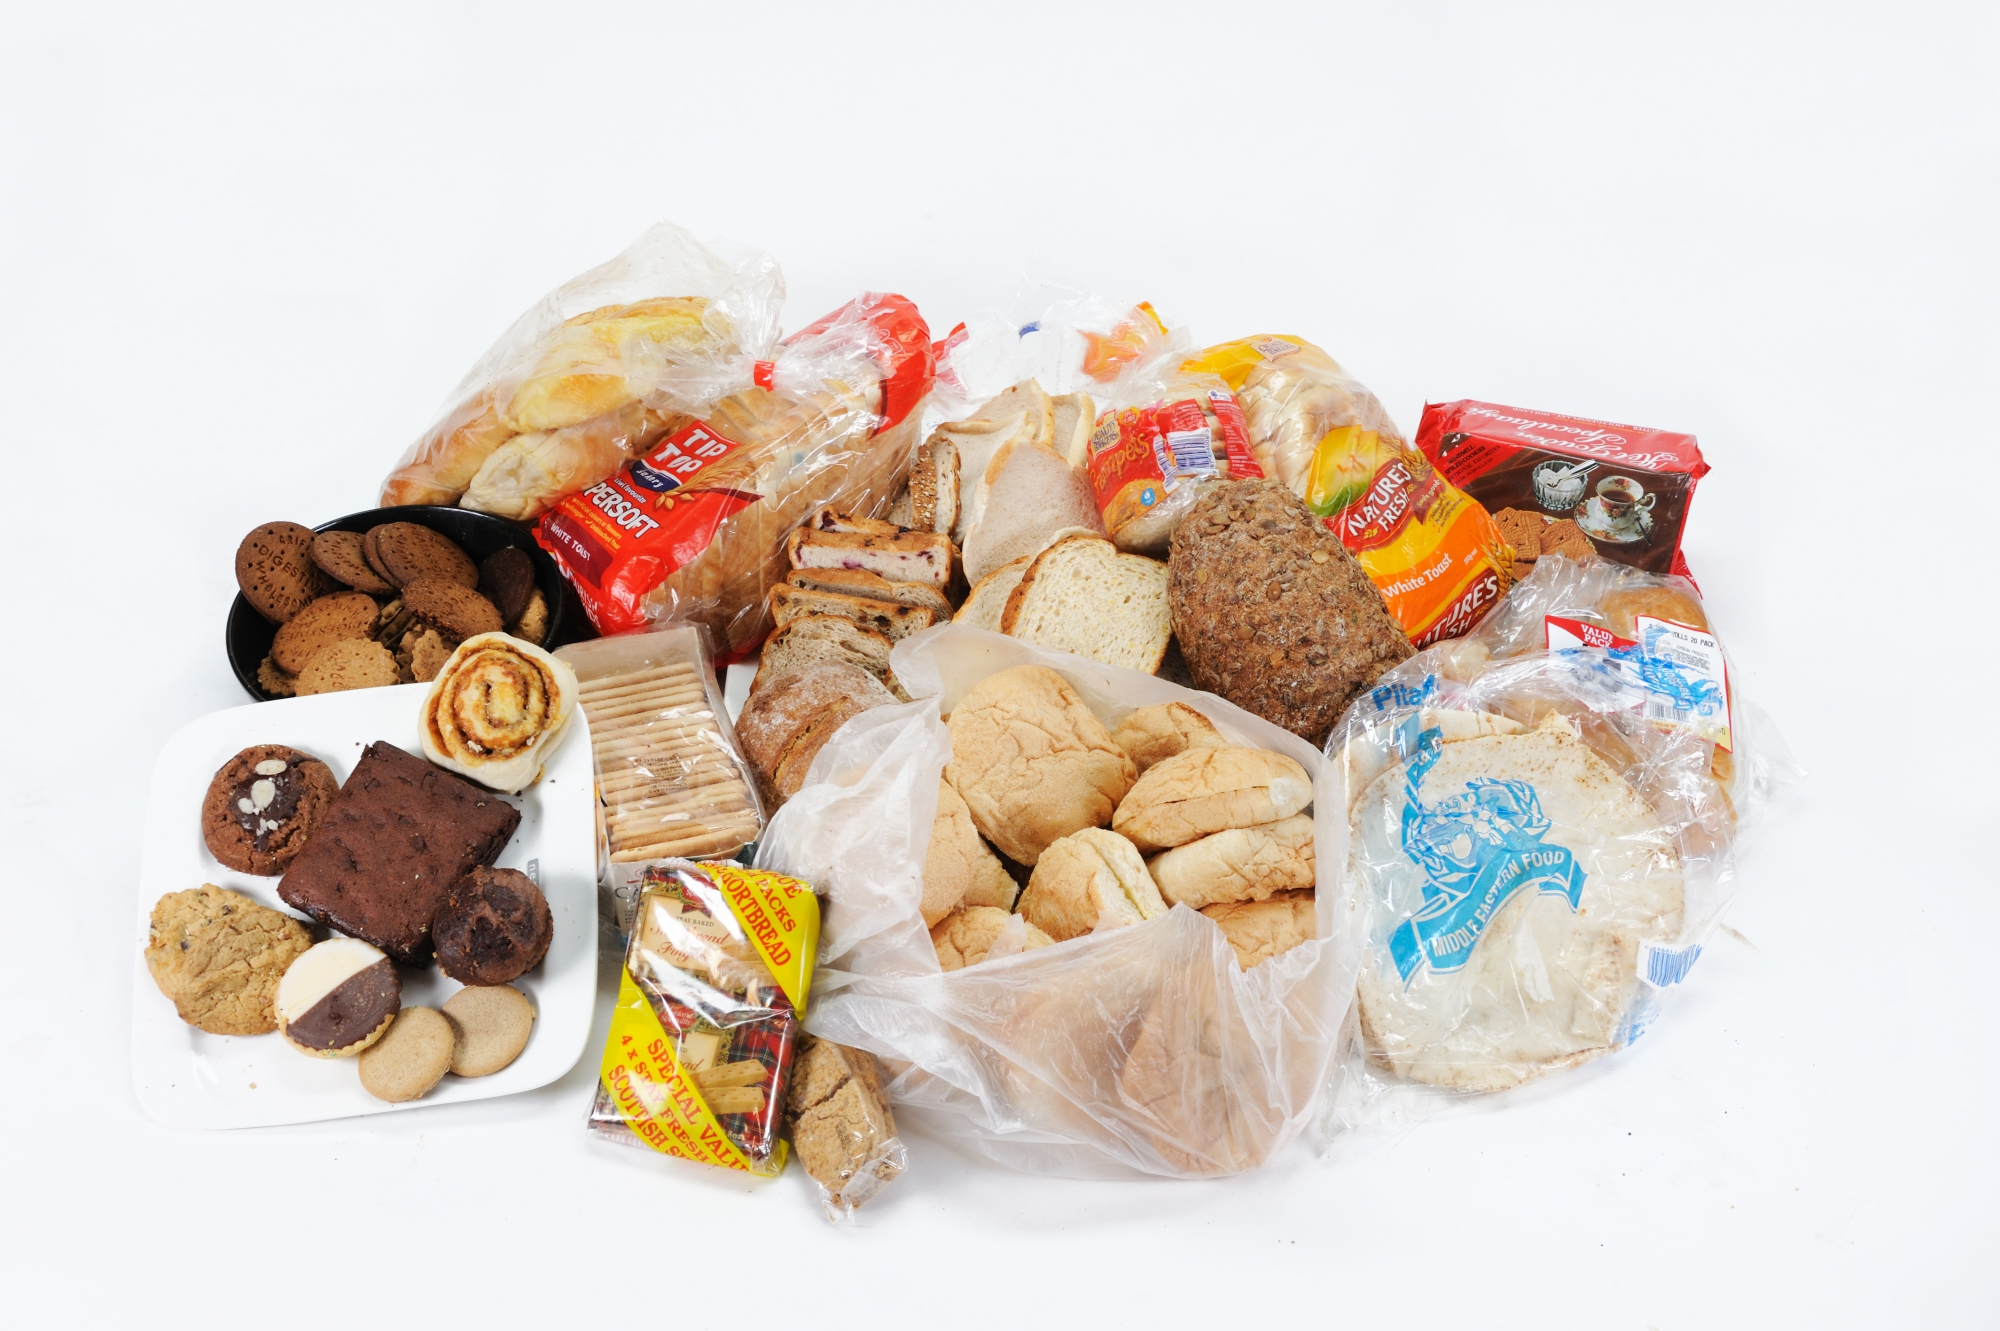 Bread is the most wasted food in New Zealand with 20 million loaves thrown out each year